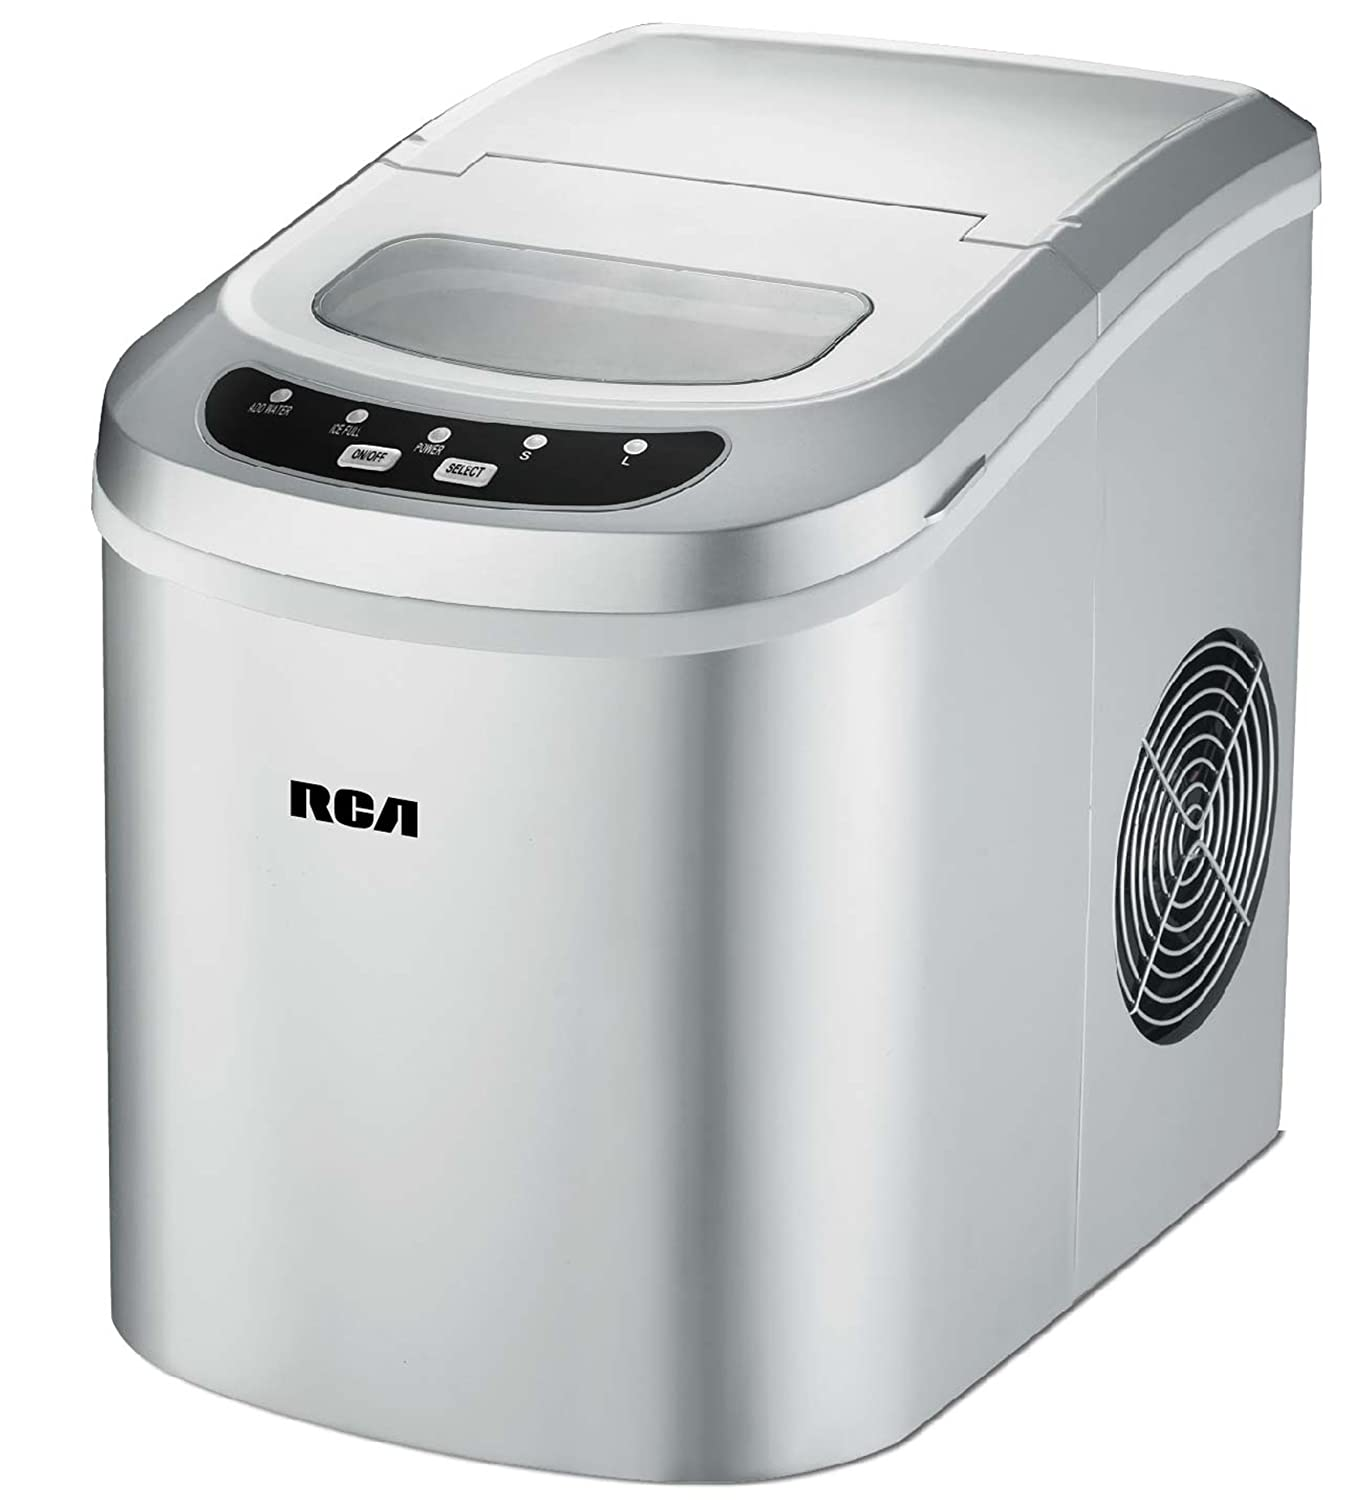 RCA ICE102: Compact Ice Maker that Has Instant Ice Production Process